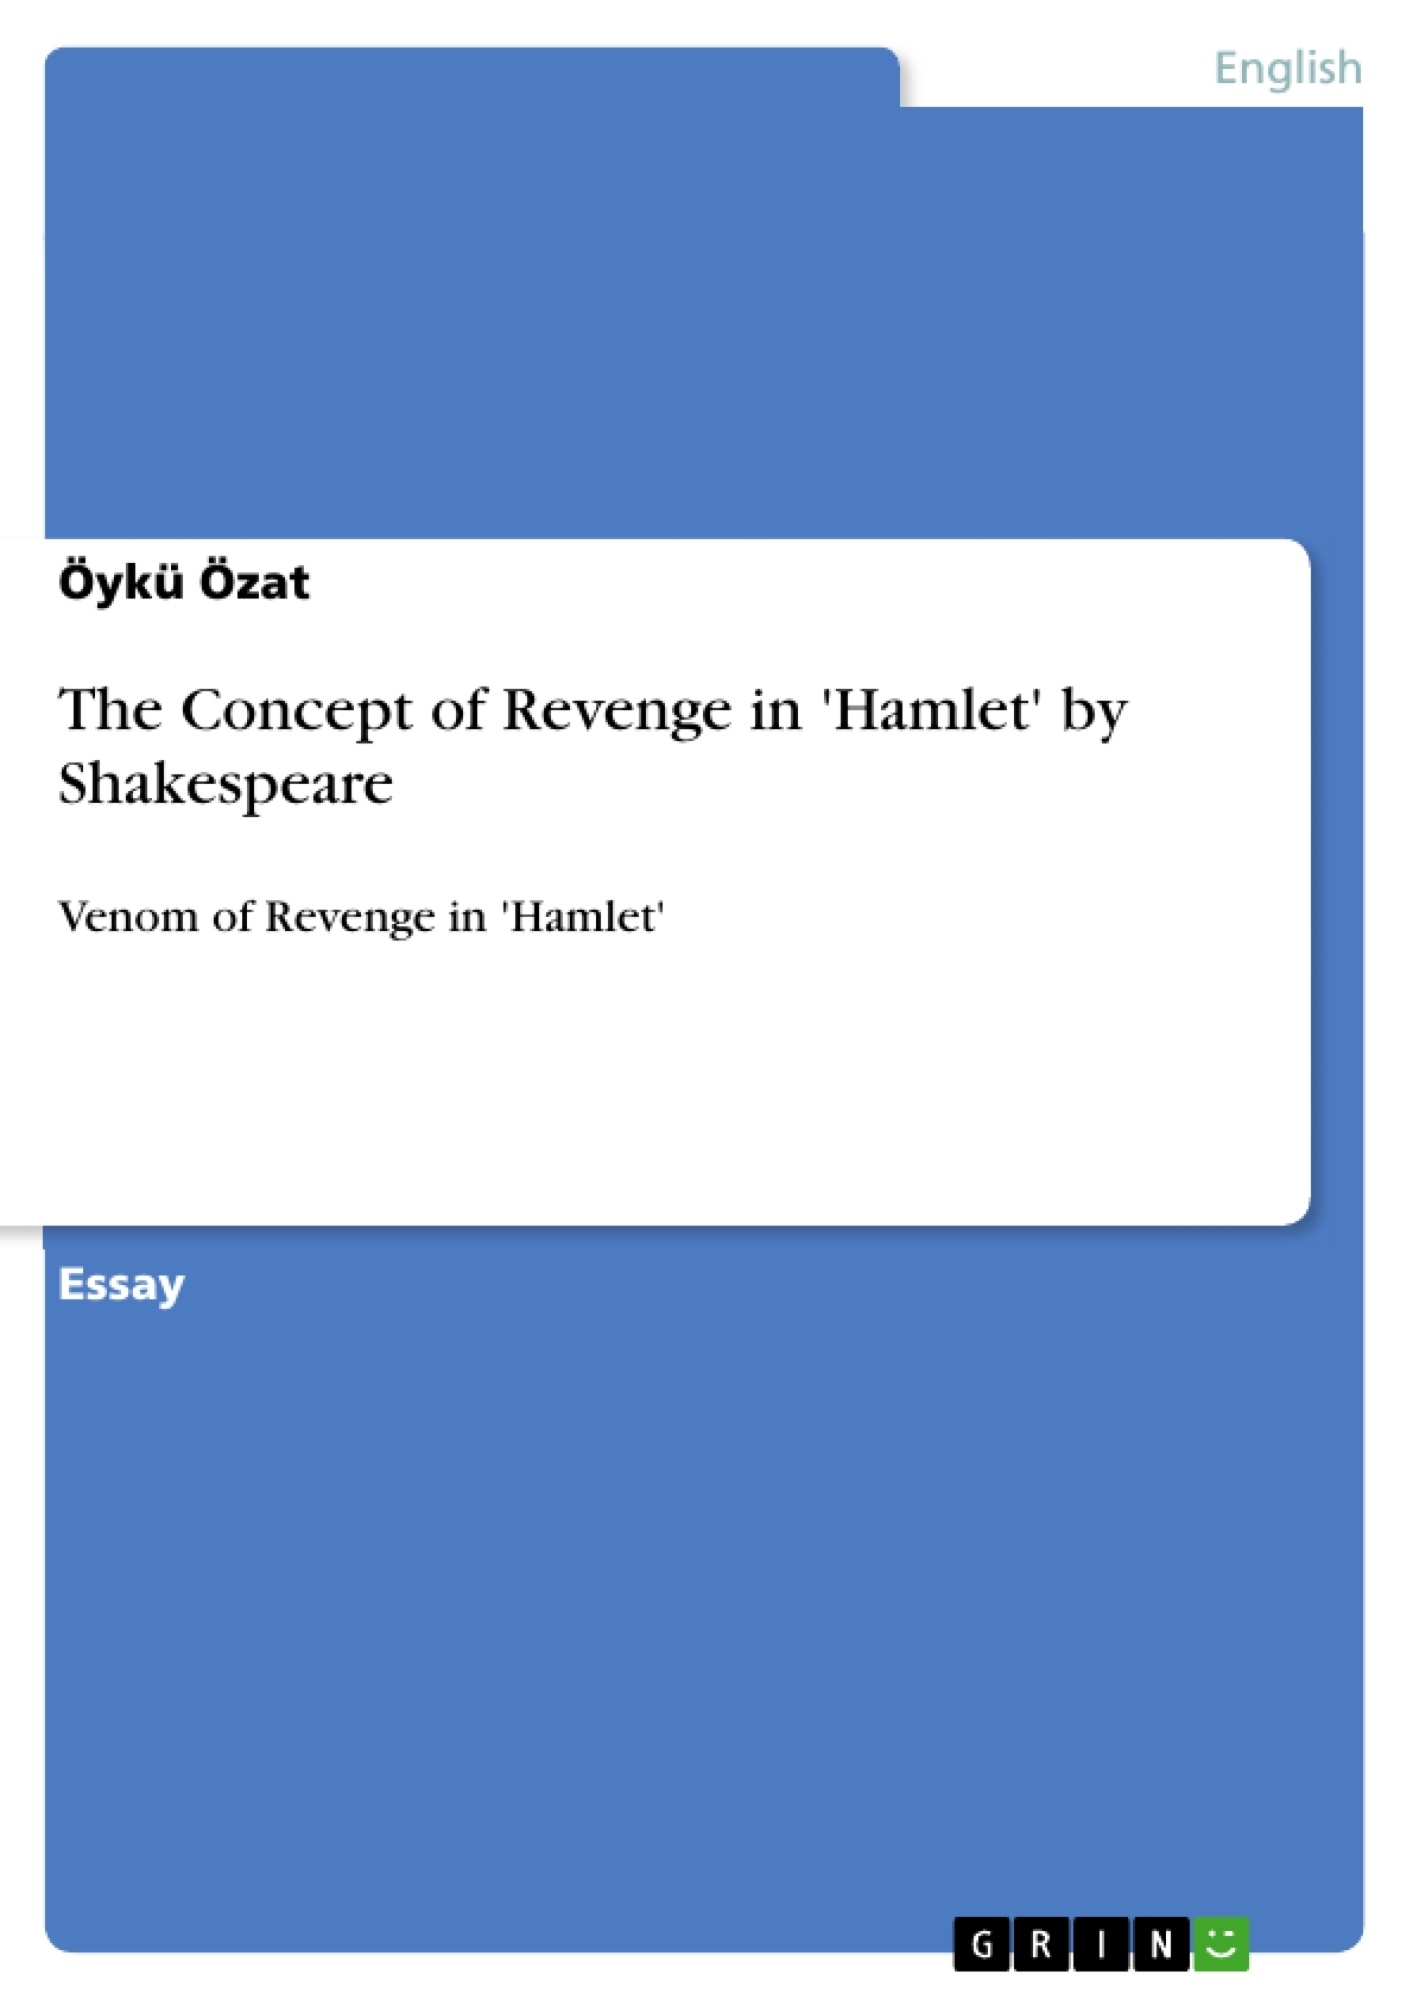 Title: The Concept of Revenge in 'Hamlet' by Shakespeare